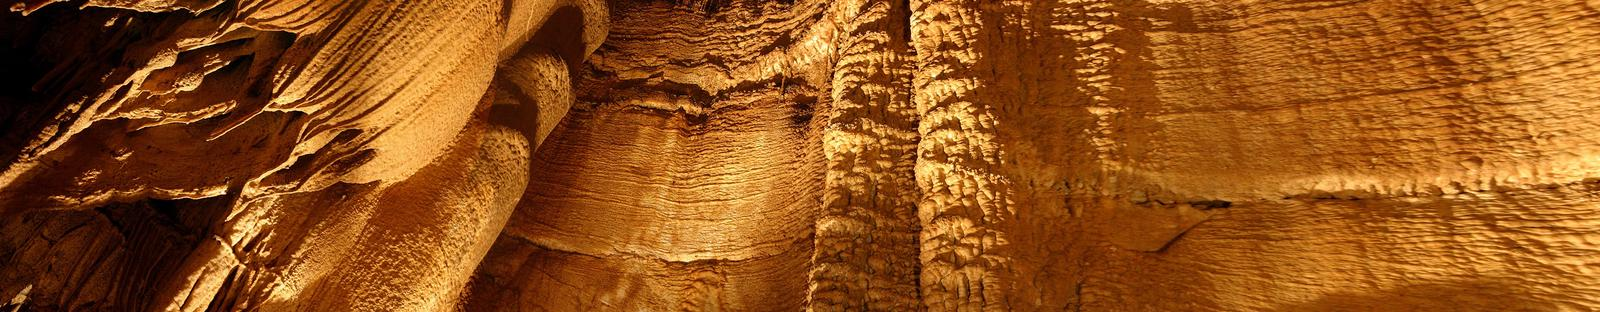 Domes and Dripstones tour, has vast areas of flowstone that resemble draperies. Domes and Dripstones tour